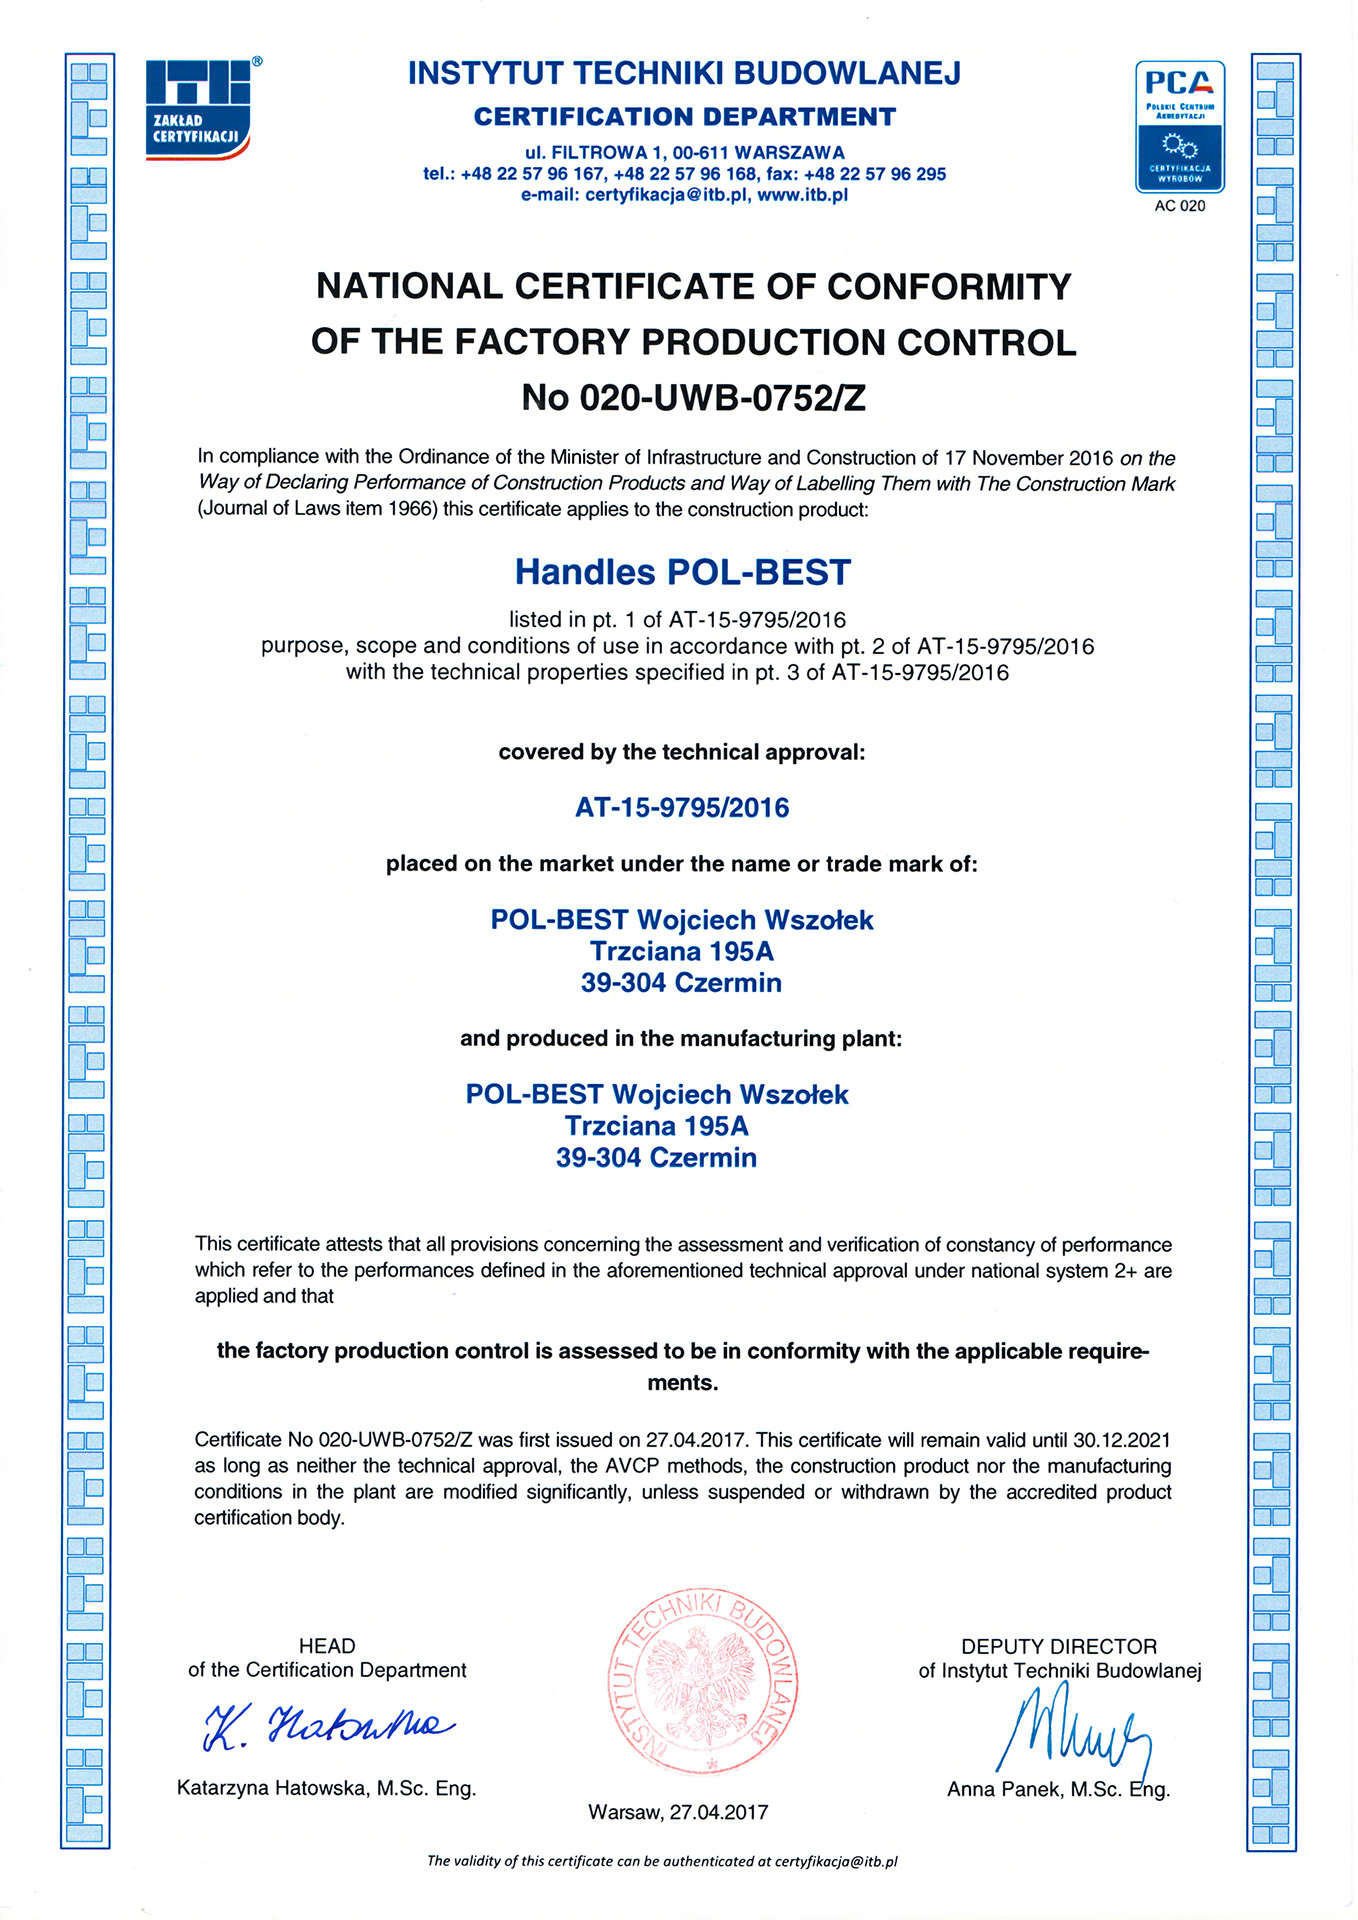 conformity fpc certificate national pol